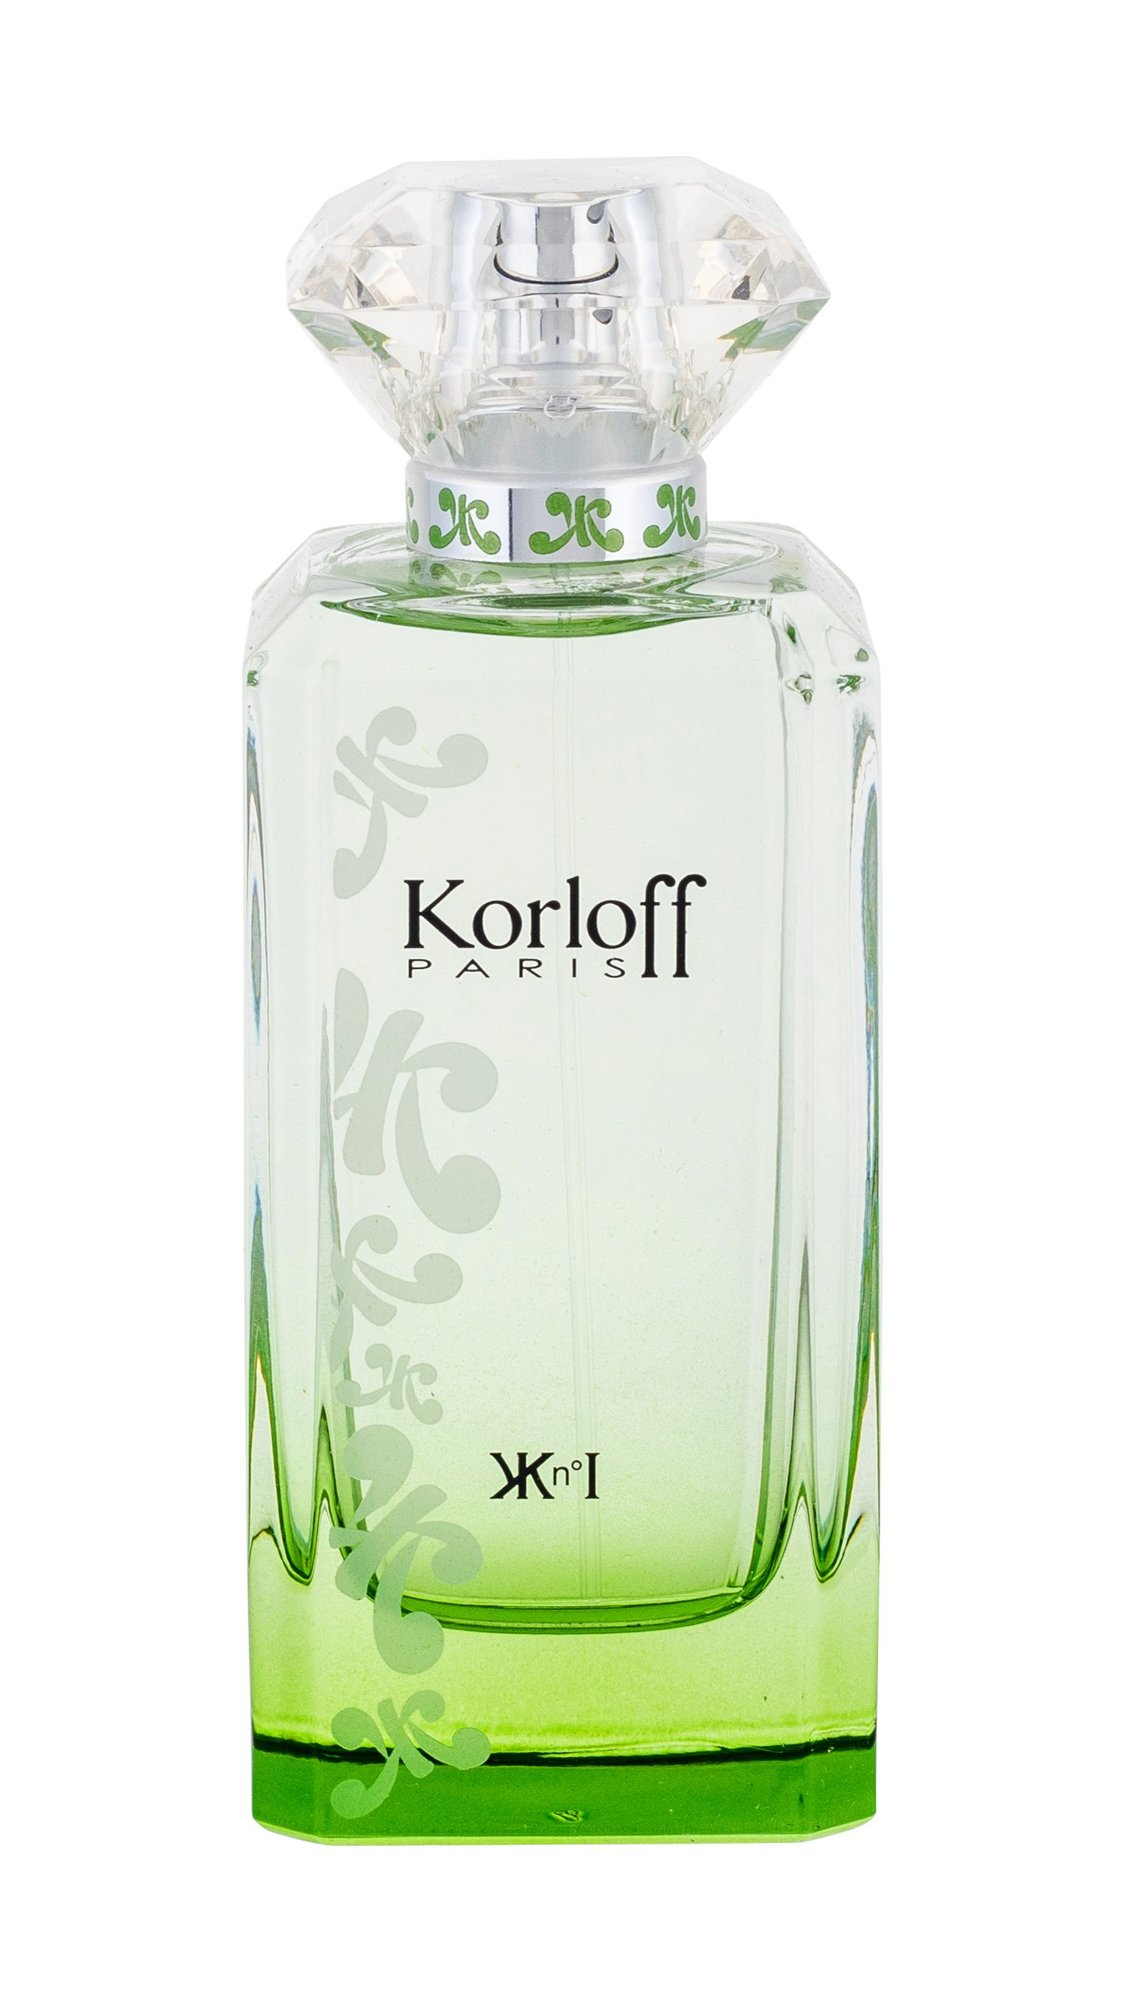 Korloff Paris N° I Green Diamond